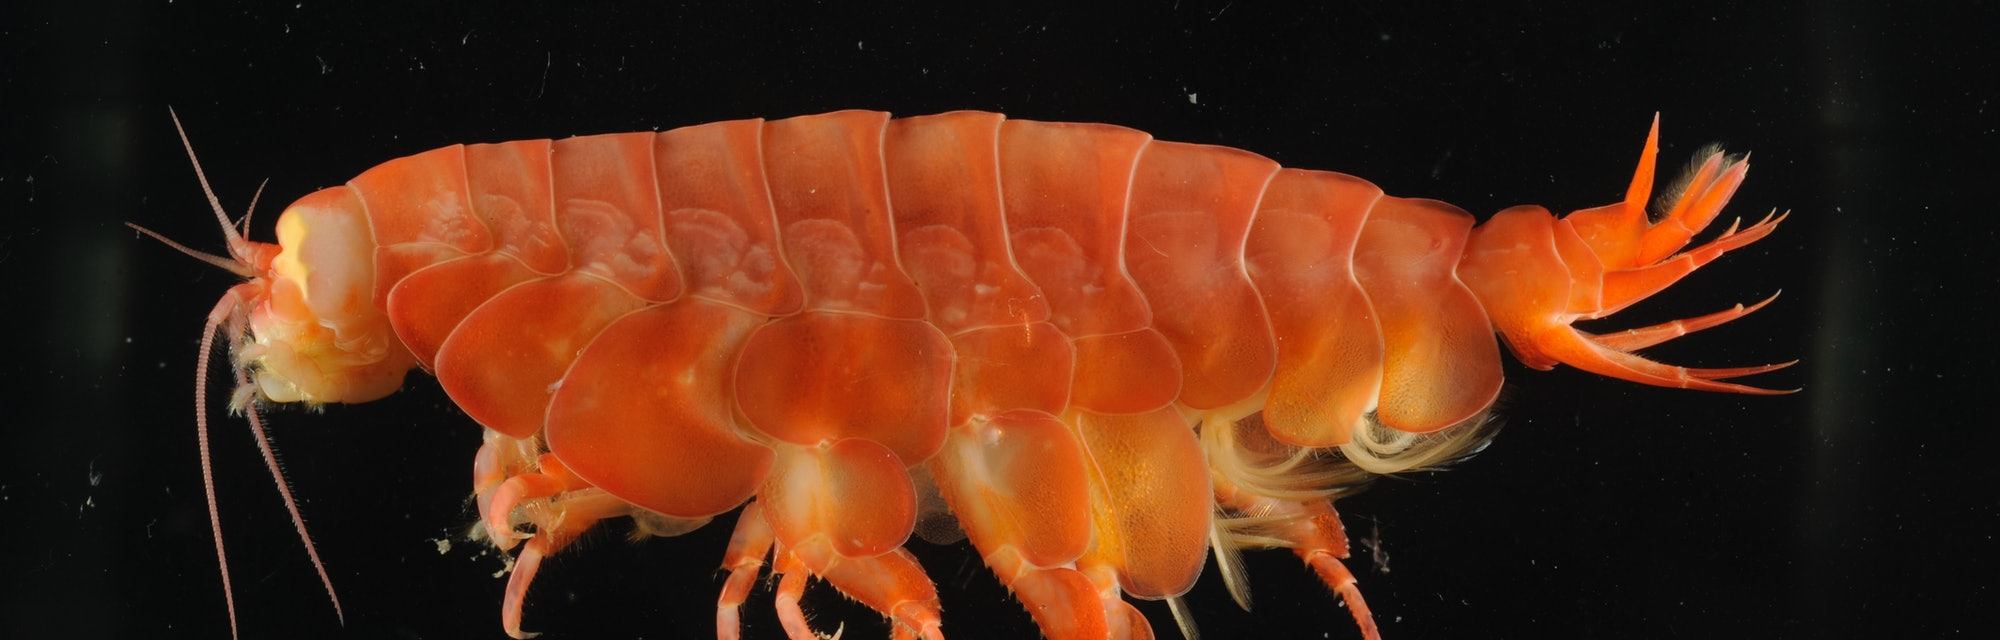 Eurythenes atacamensis, a giant scavenging amphipod from hadal depths of the Peru-Chile Trench.